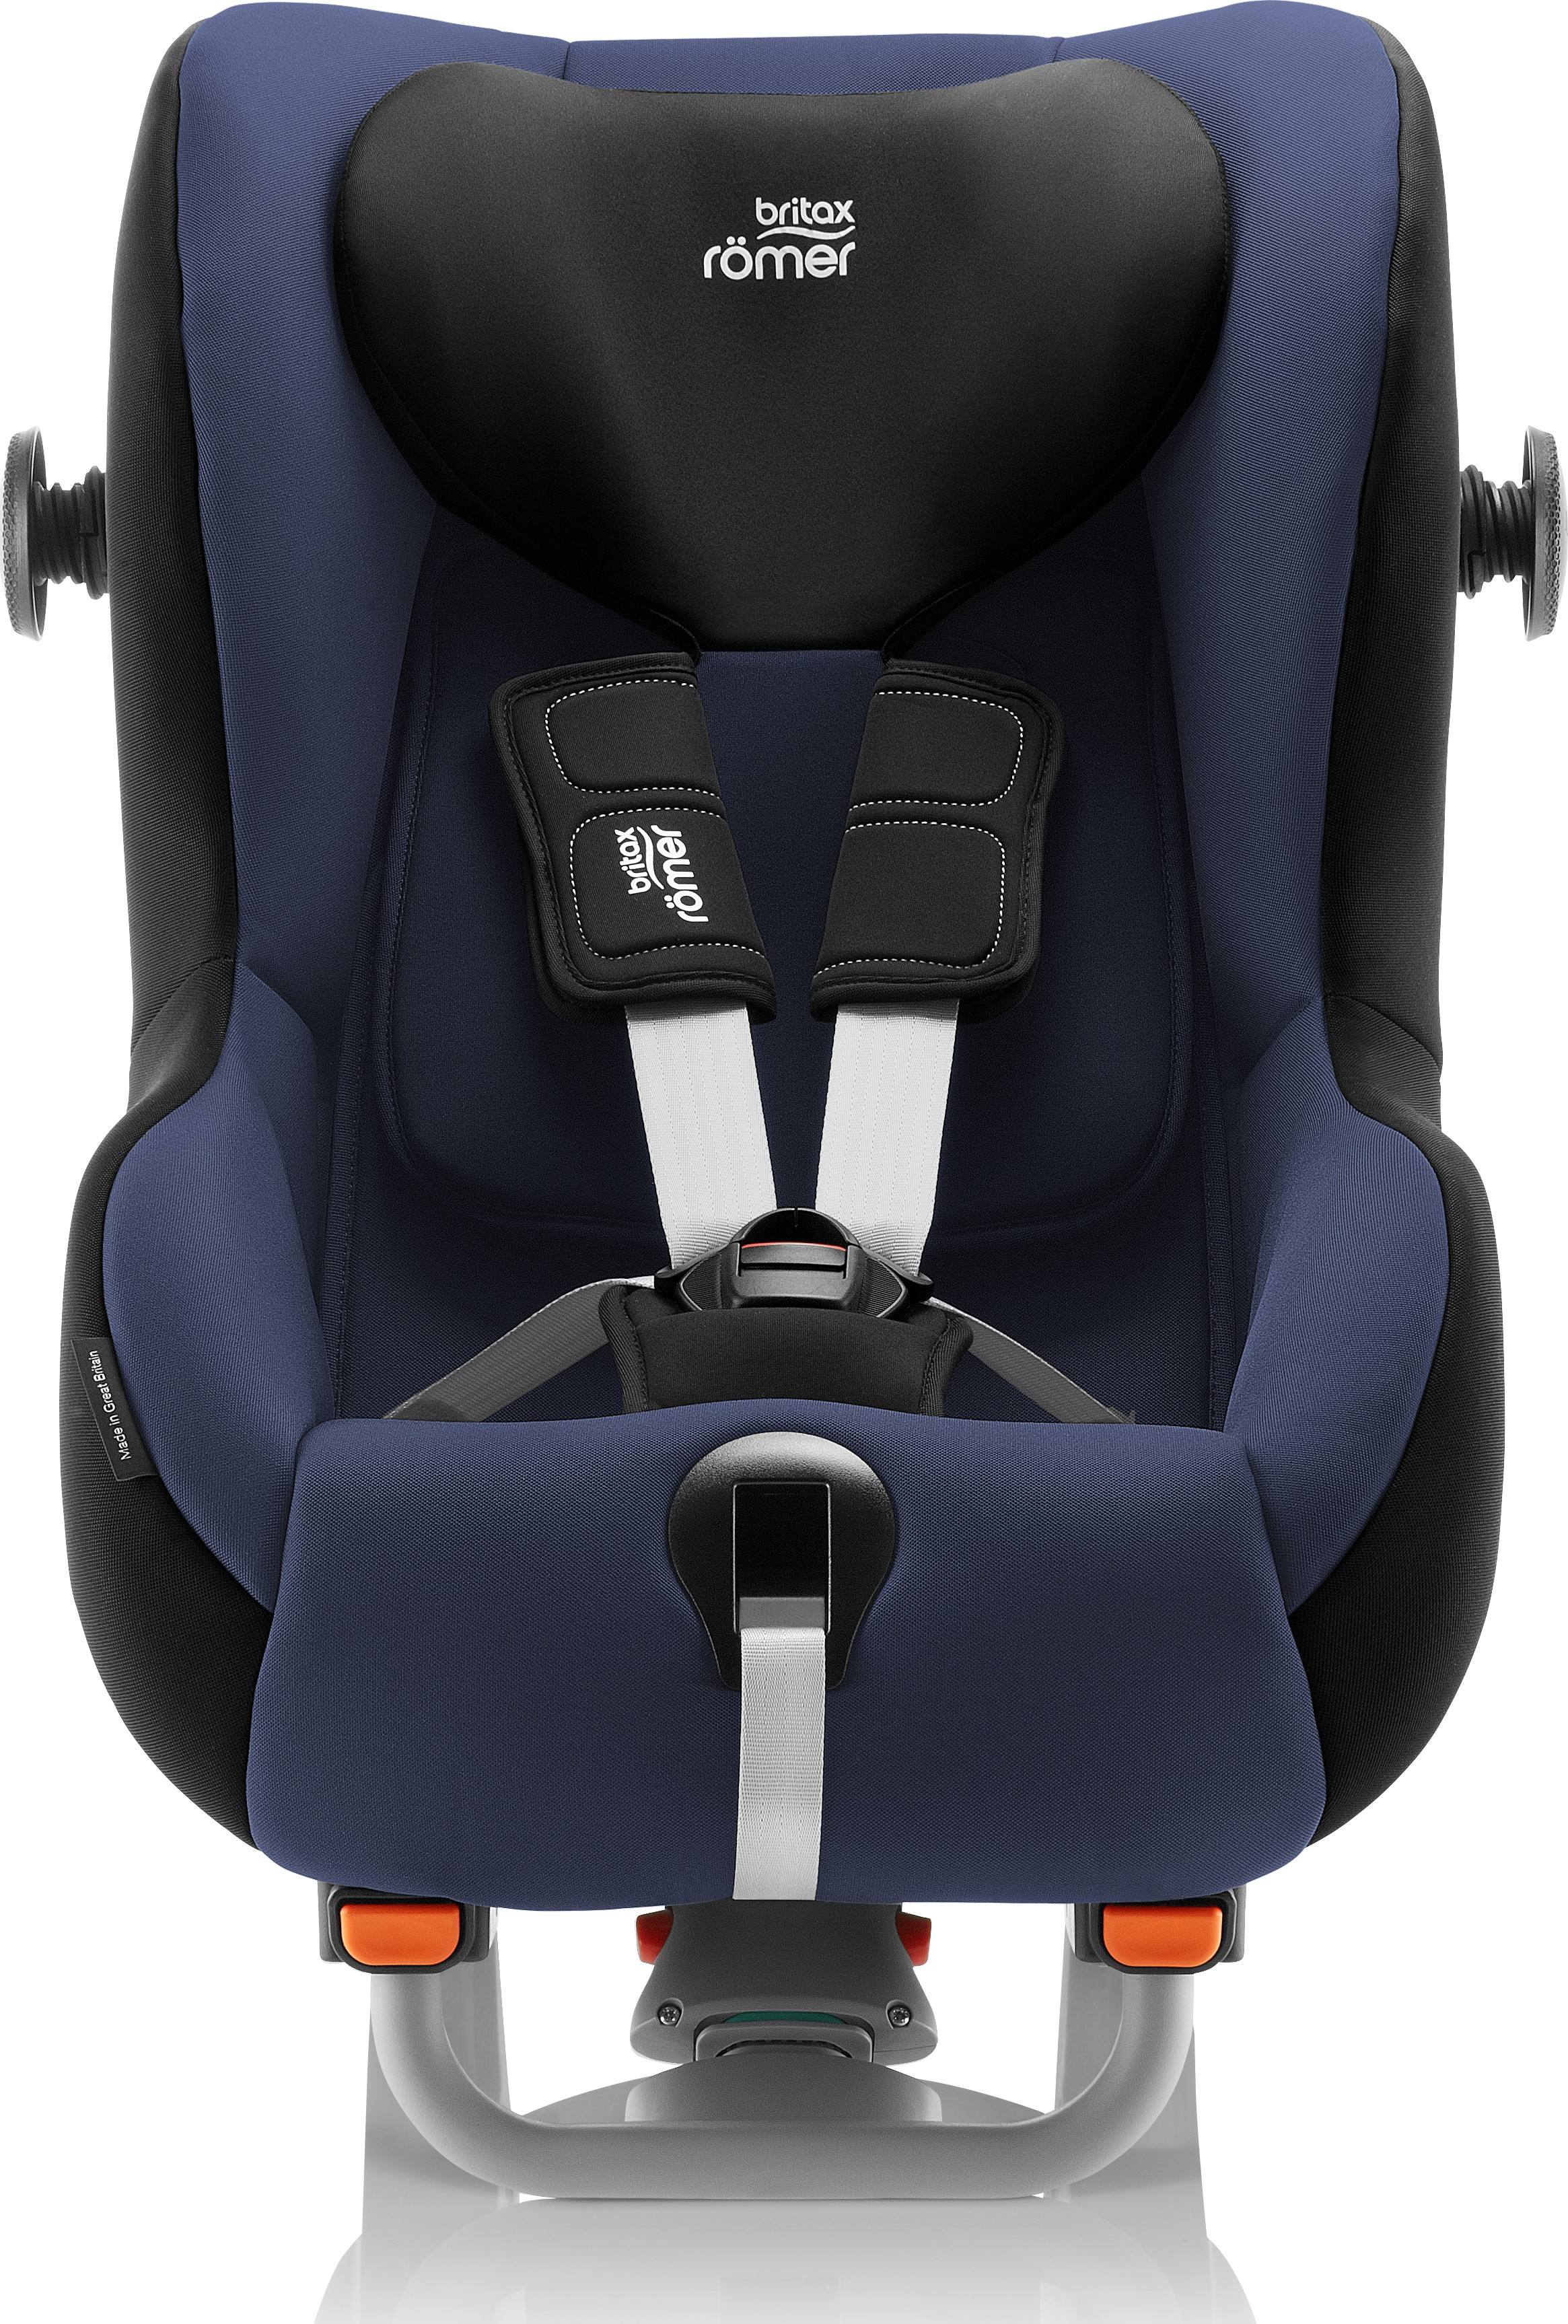 britax romer max-way plus moonlight blue